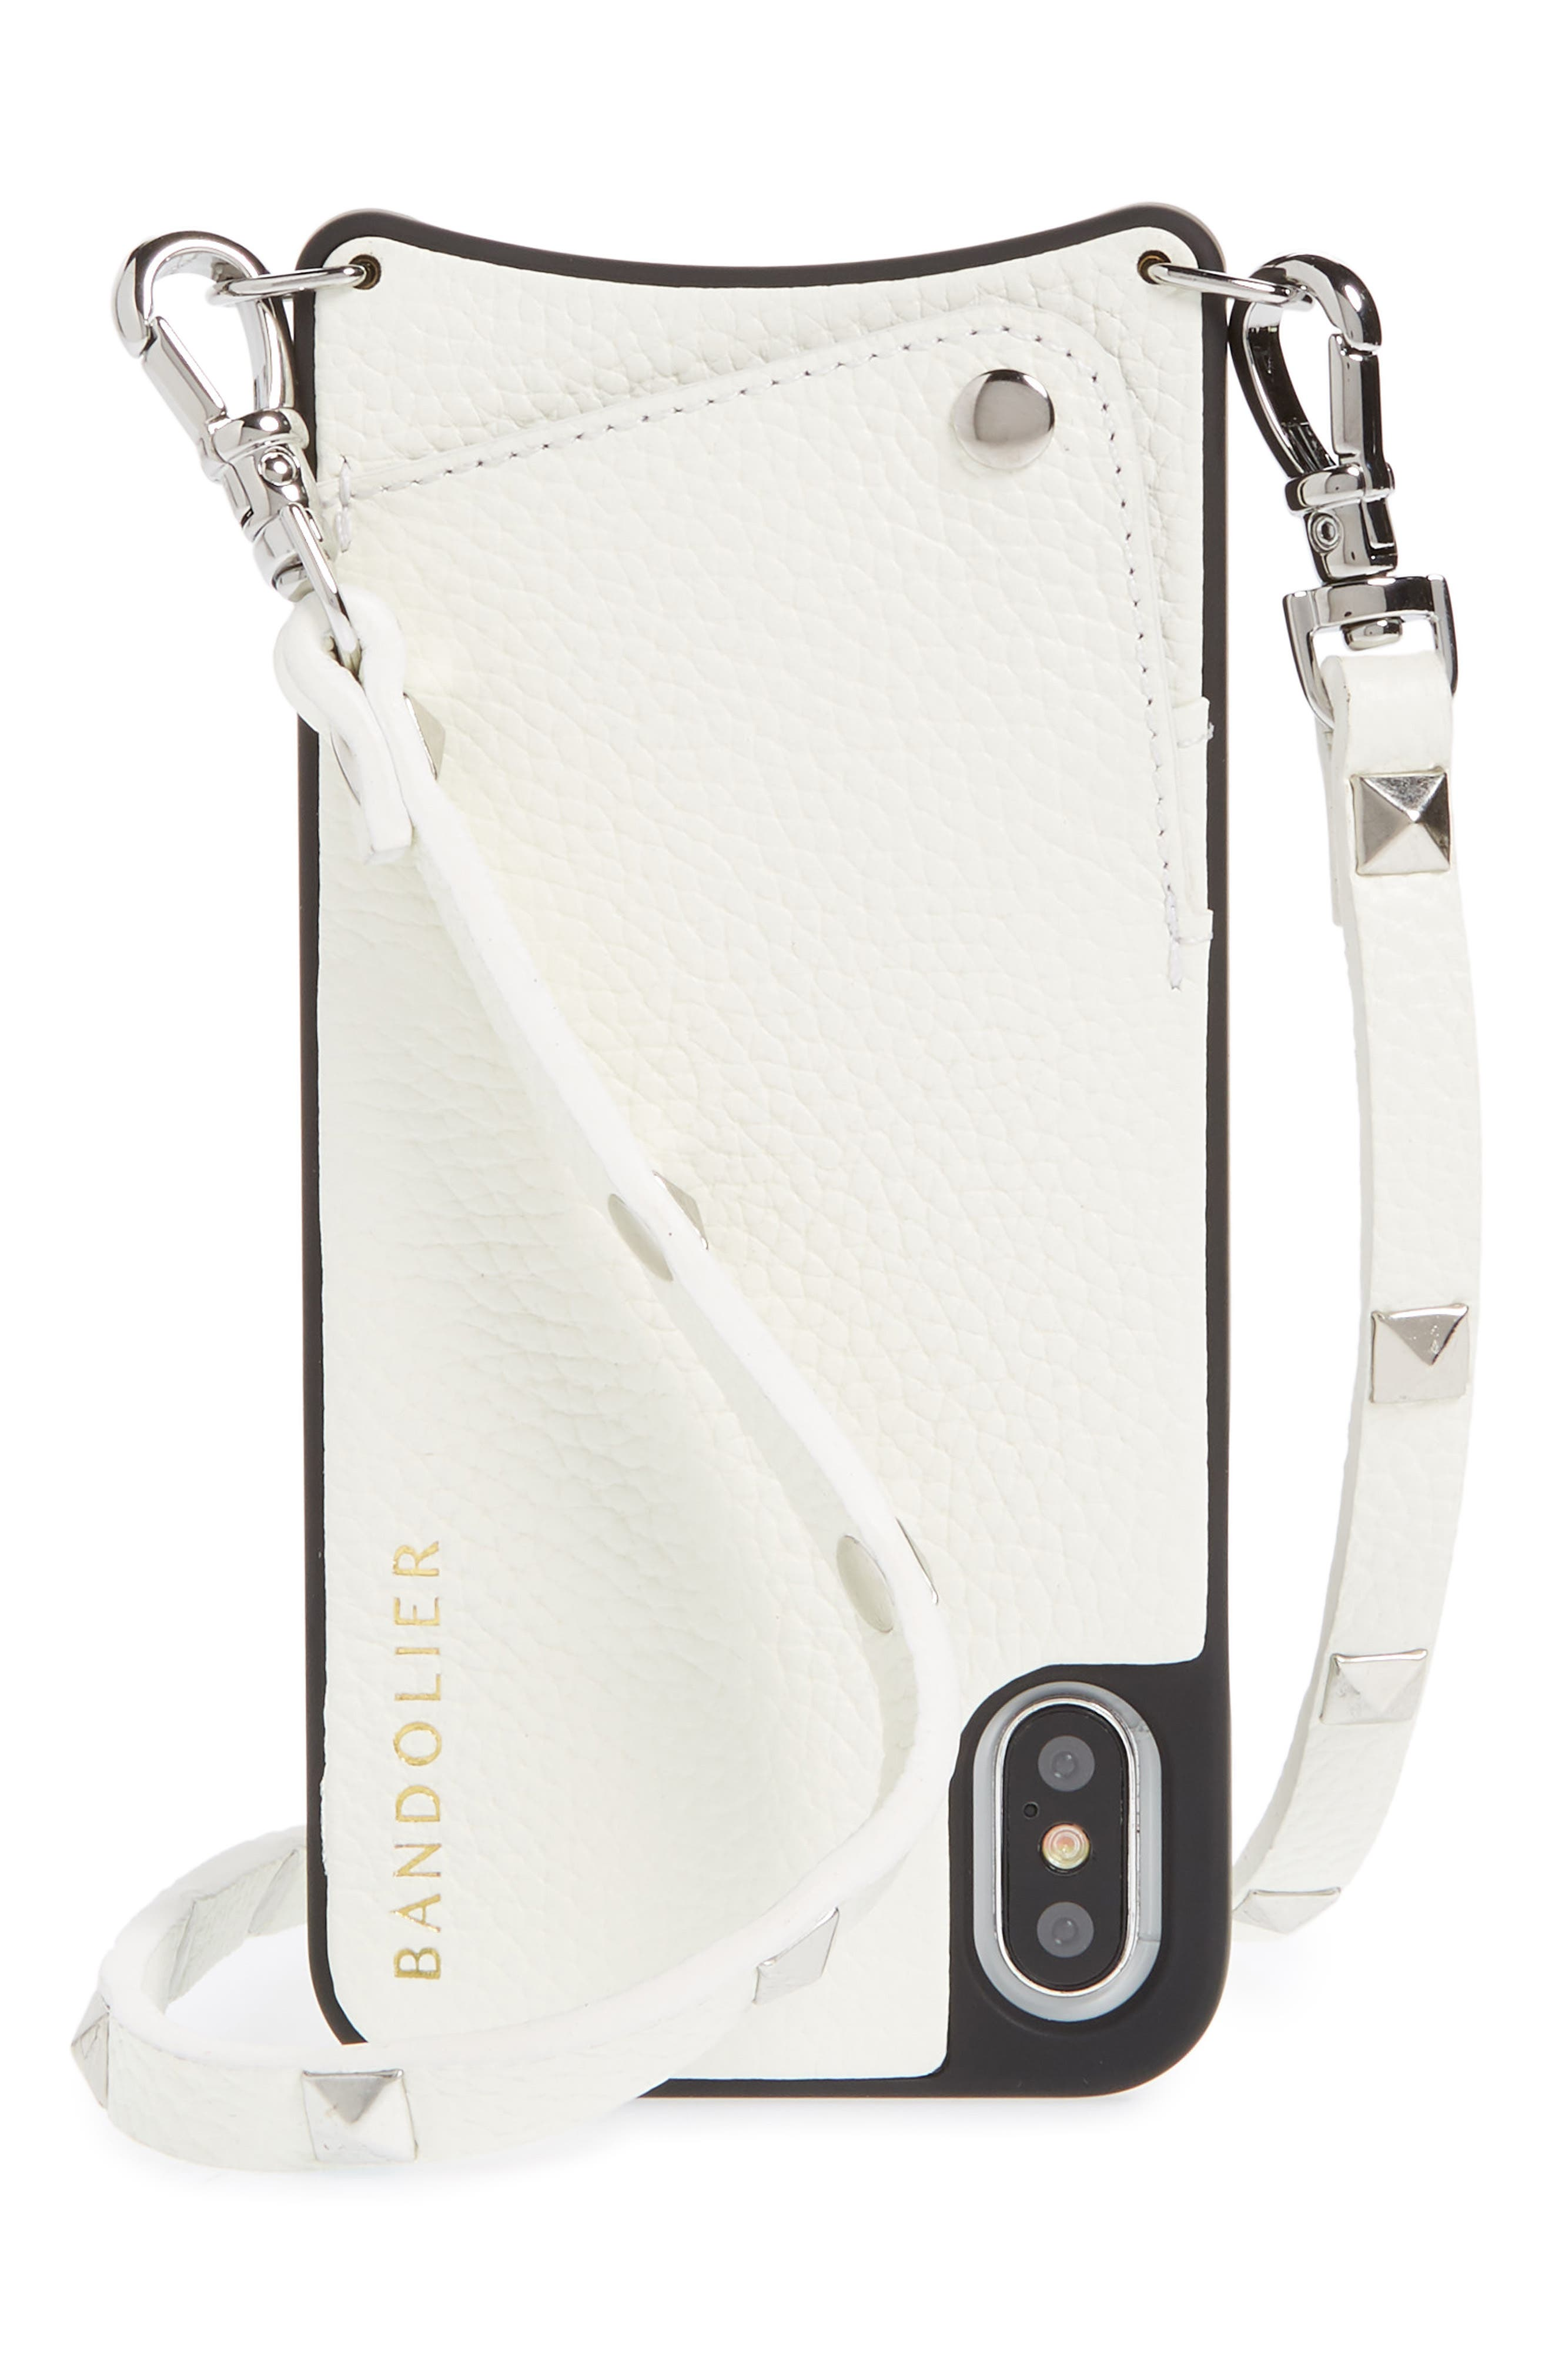 Sarah Leather iPhone X/Xs Crossbody Case,                             Main thumbnail 1, color,                             WHITE/ SILVER